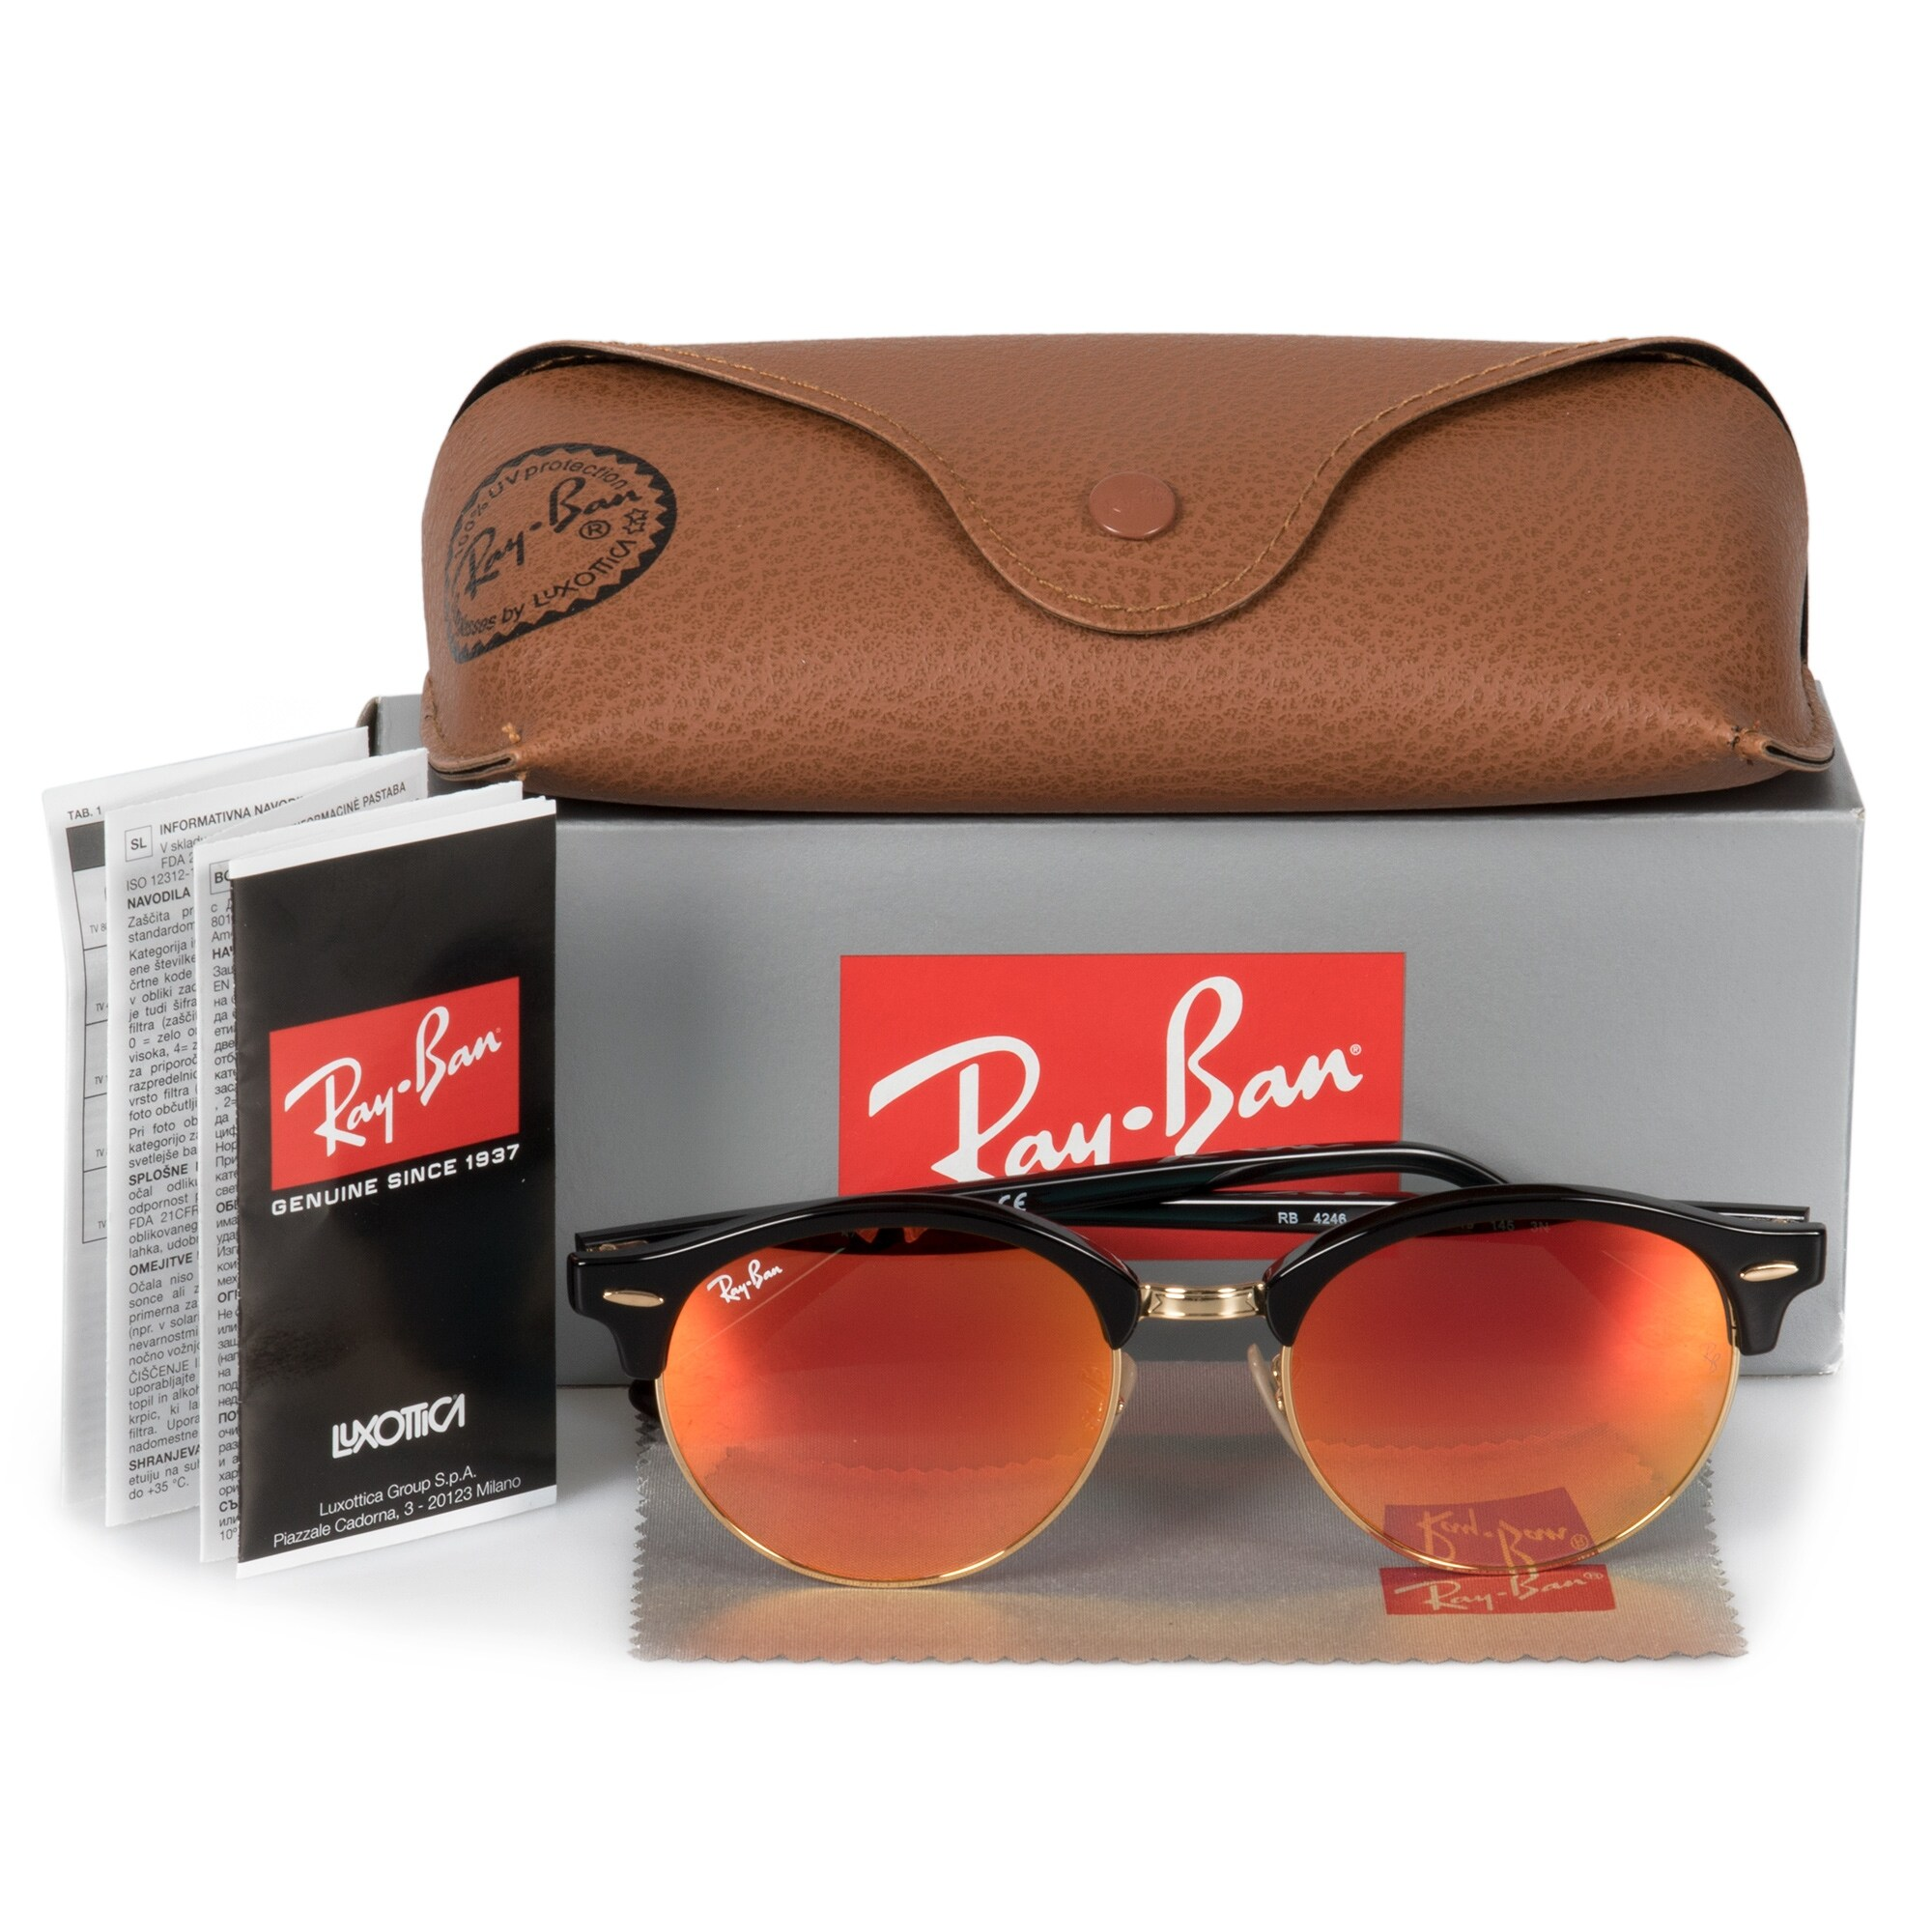 a05eaf58e5 Shop Ray-Ban Clubround Classic Sunglasses RB4246 901/4W 51 - Free Shipping  Today - Overstock - 23138961